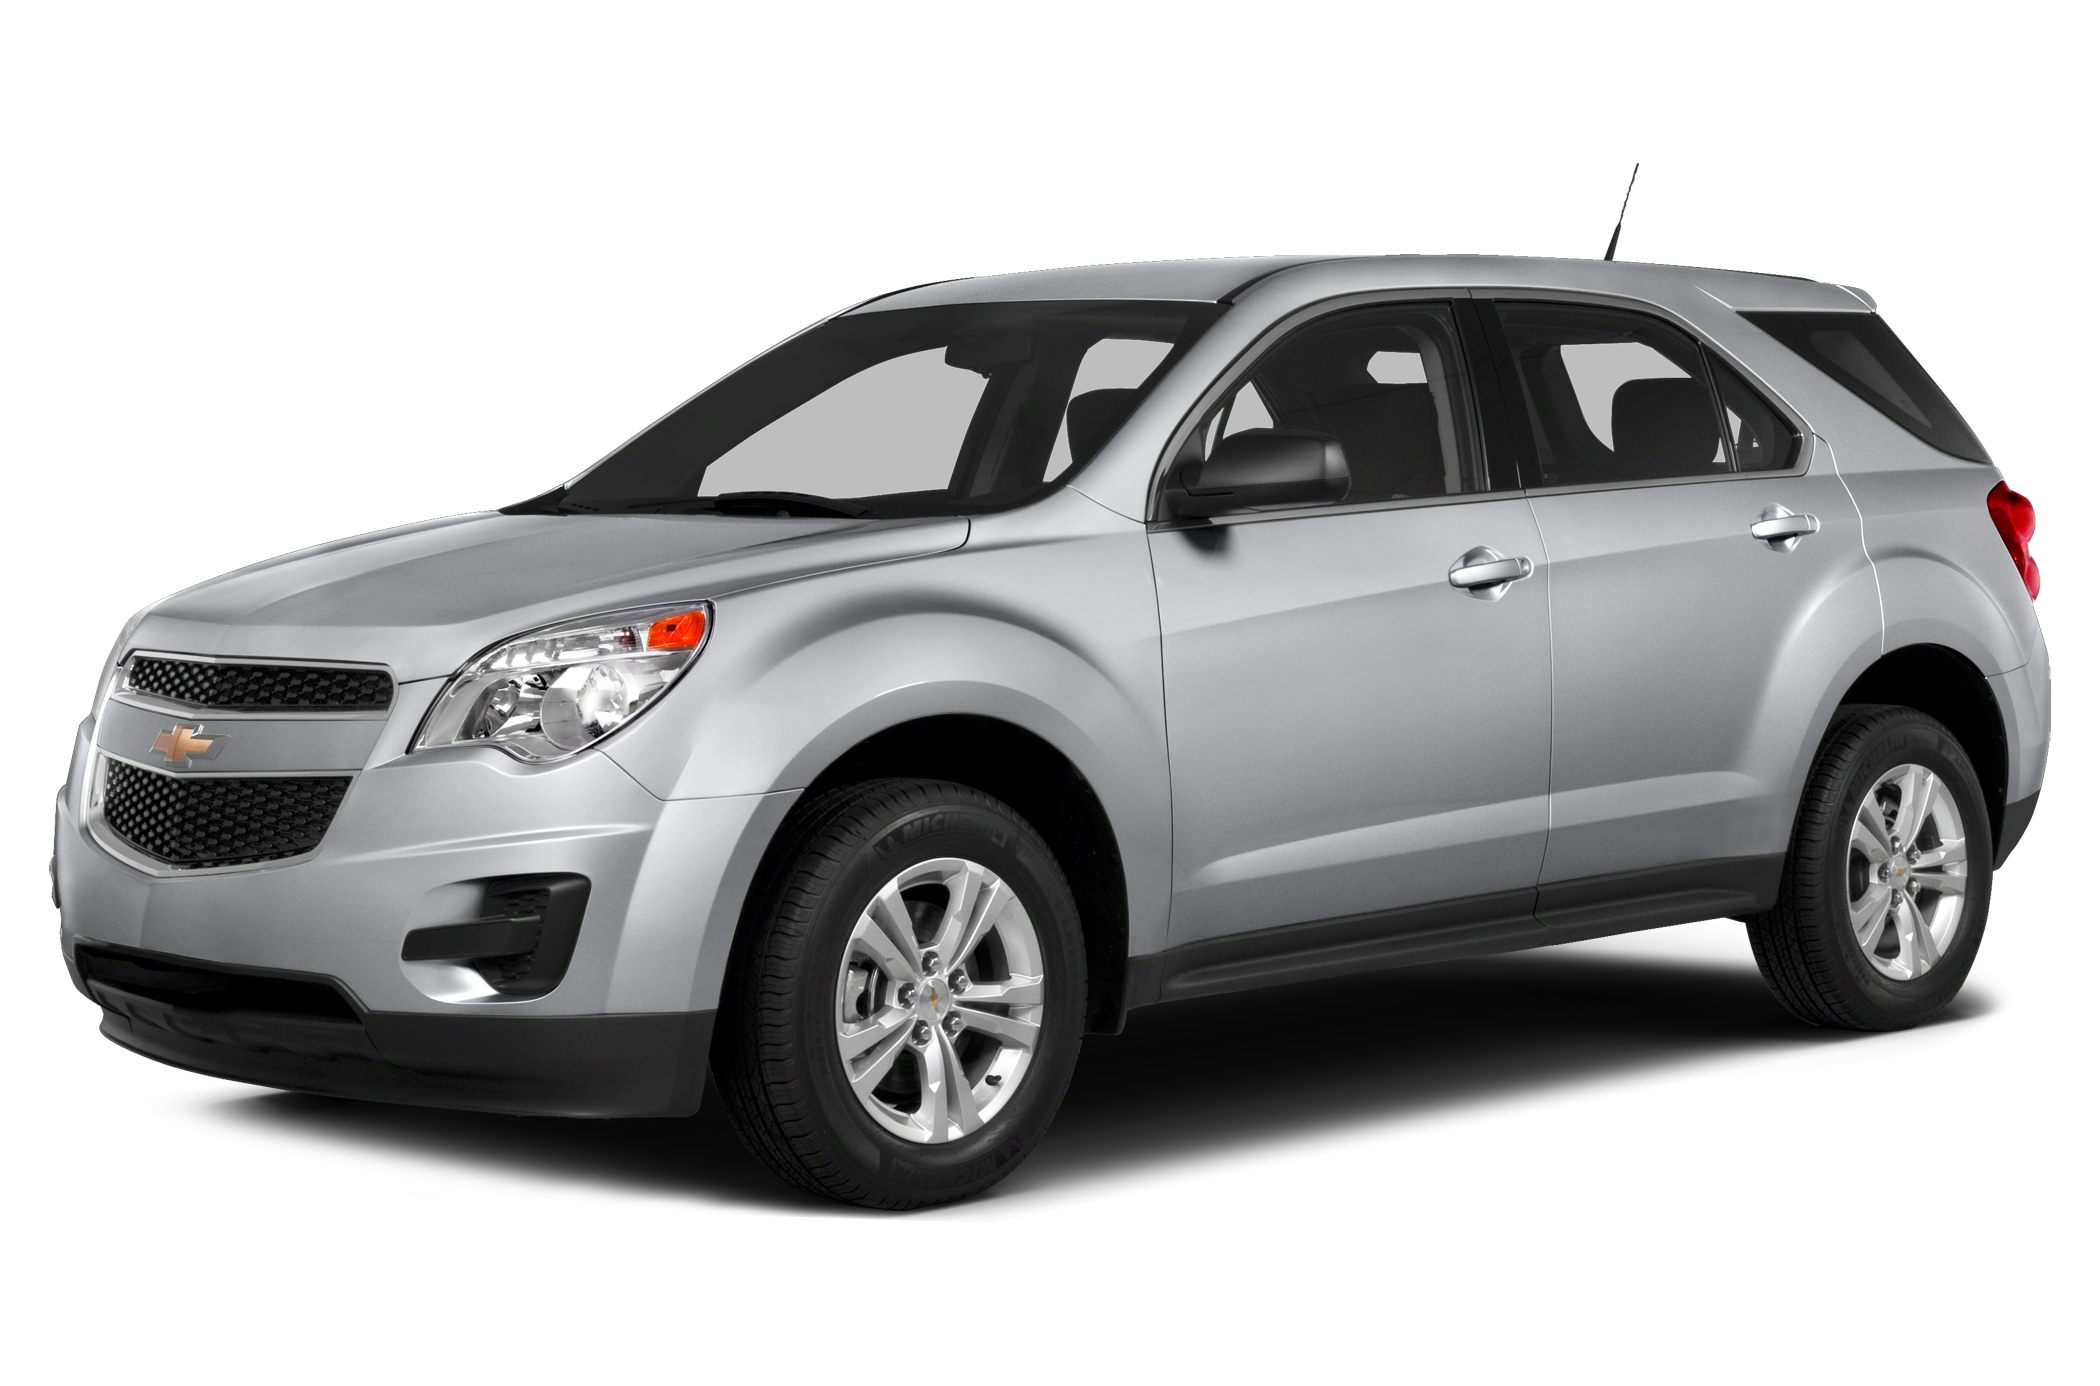 2015 Chevrolet Equinox LS SUV for sale in Jonesboro for $25,470 with 0 miles.